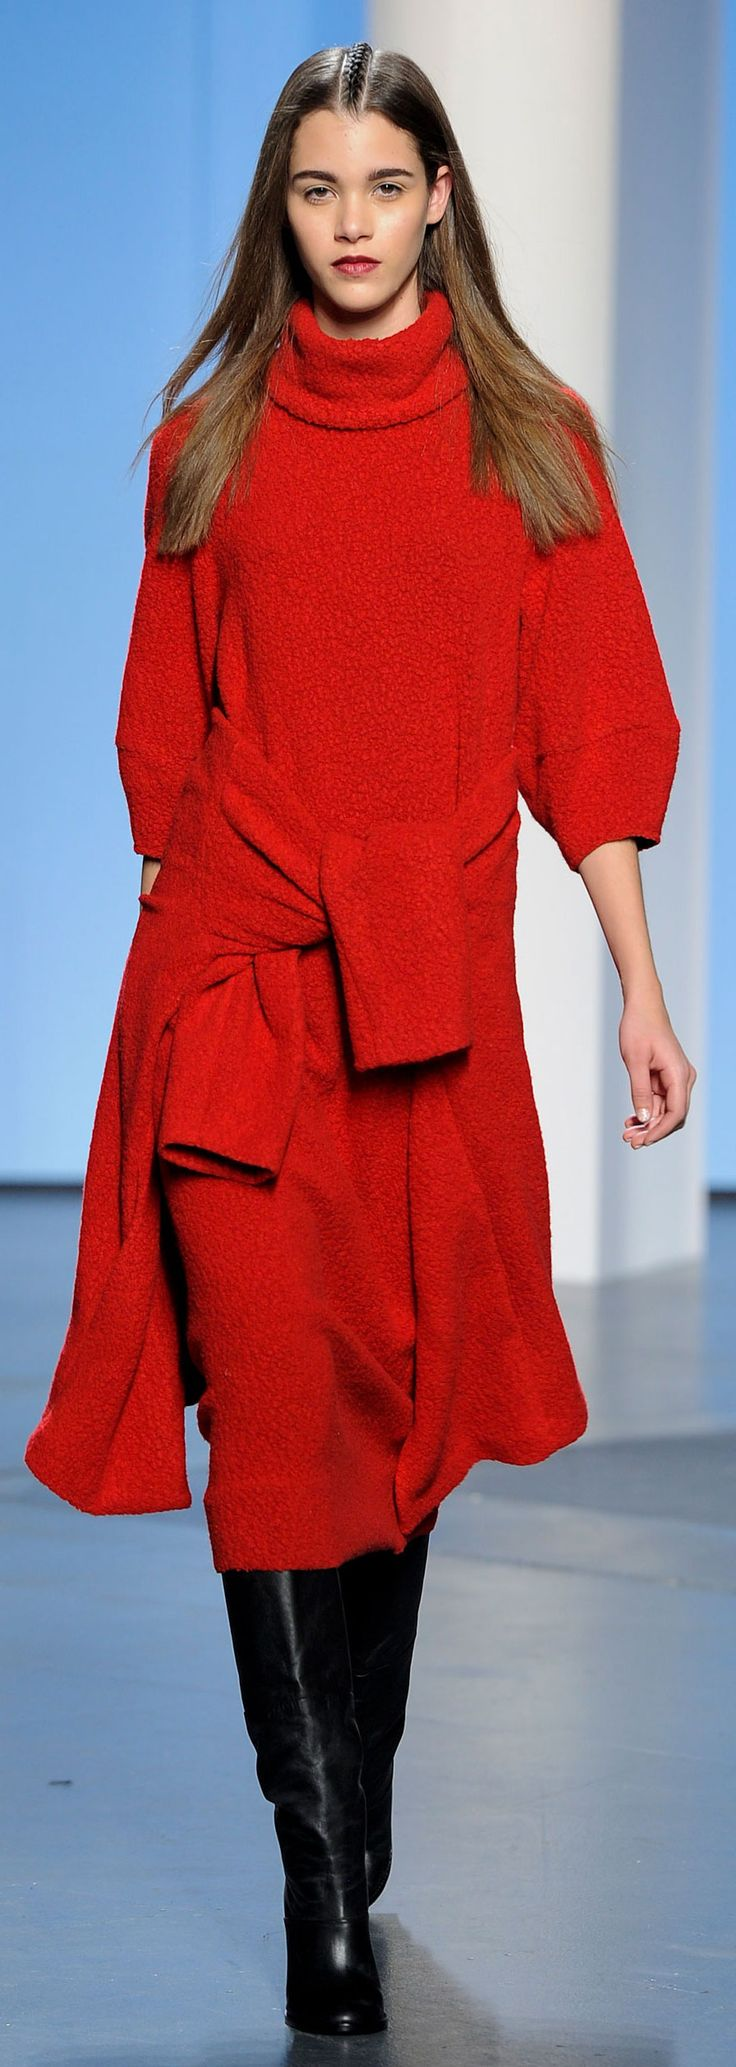 Tibi Fall 2014 #NYFW @Tibi New York New York